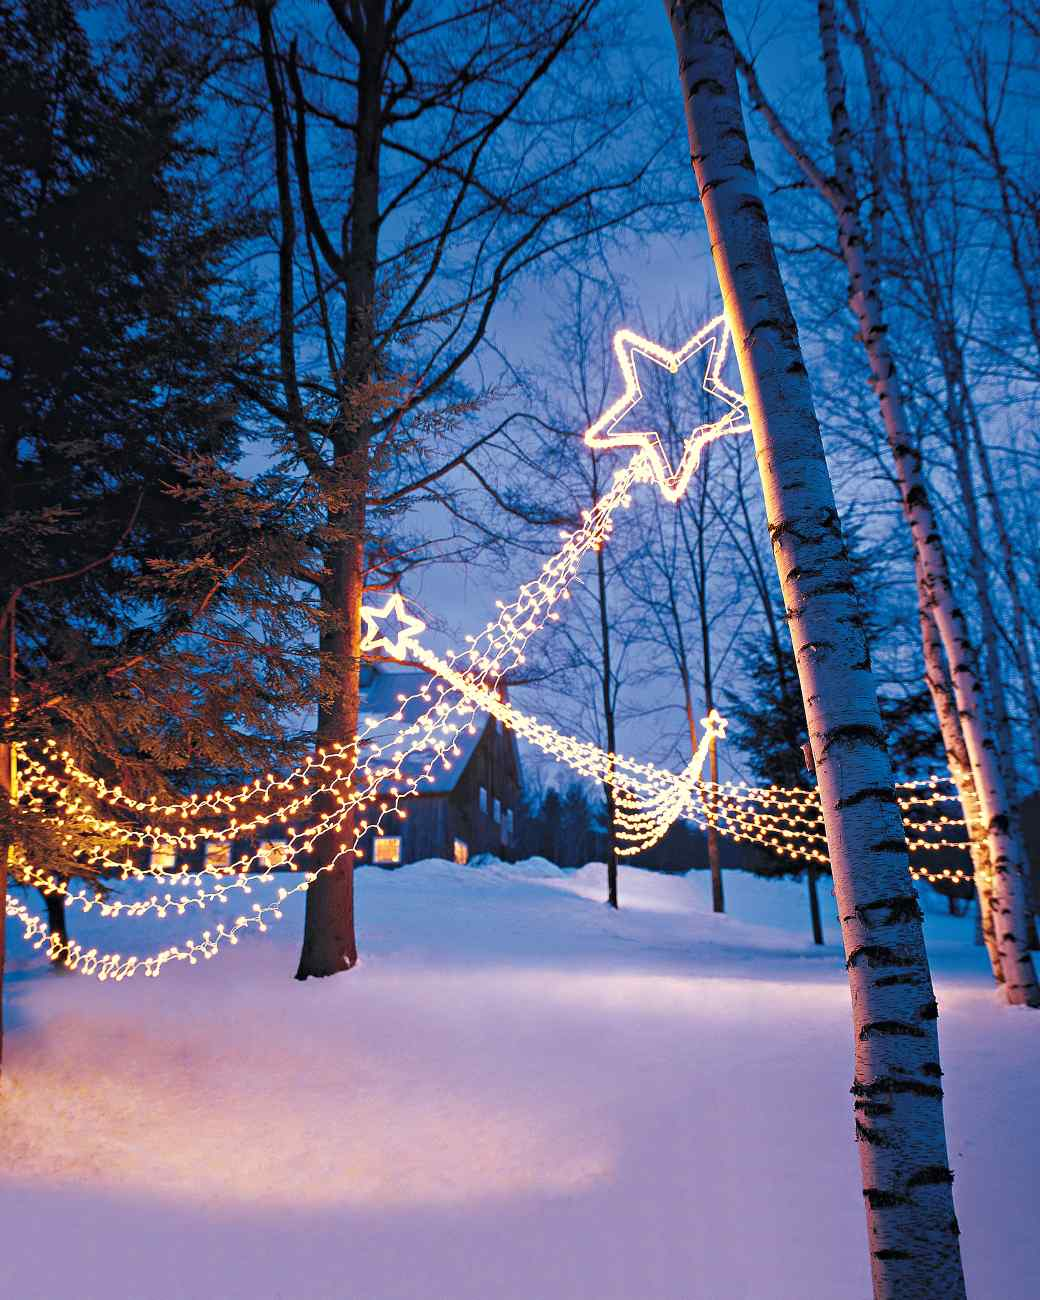 DIYoutdoorchristmaslightslightingstars.jpg